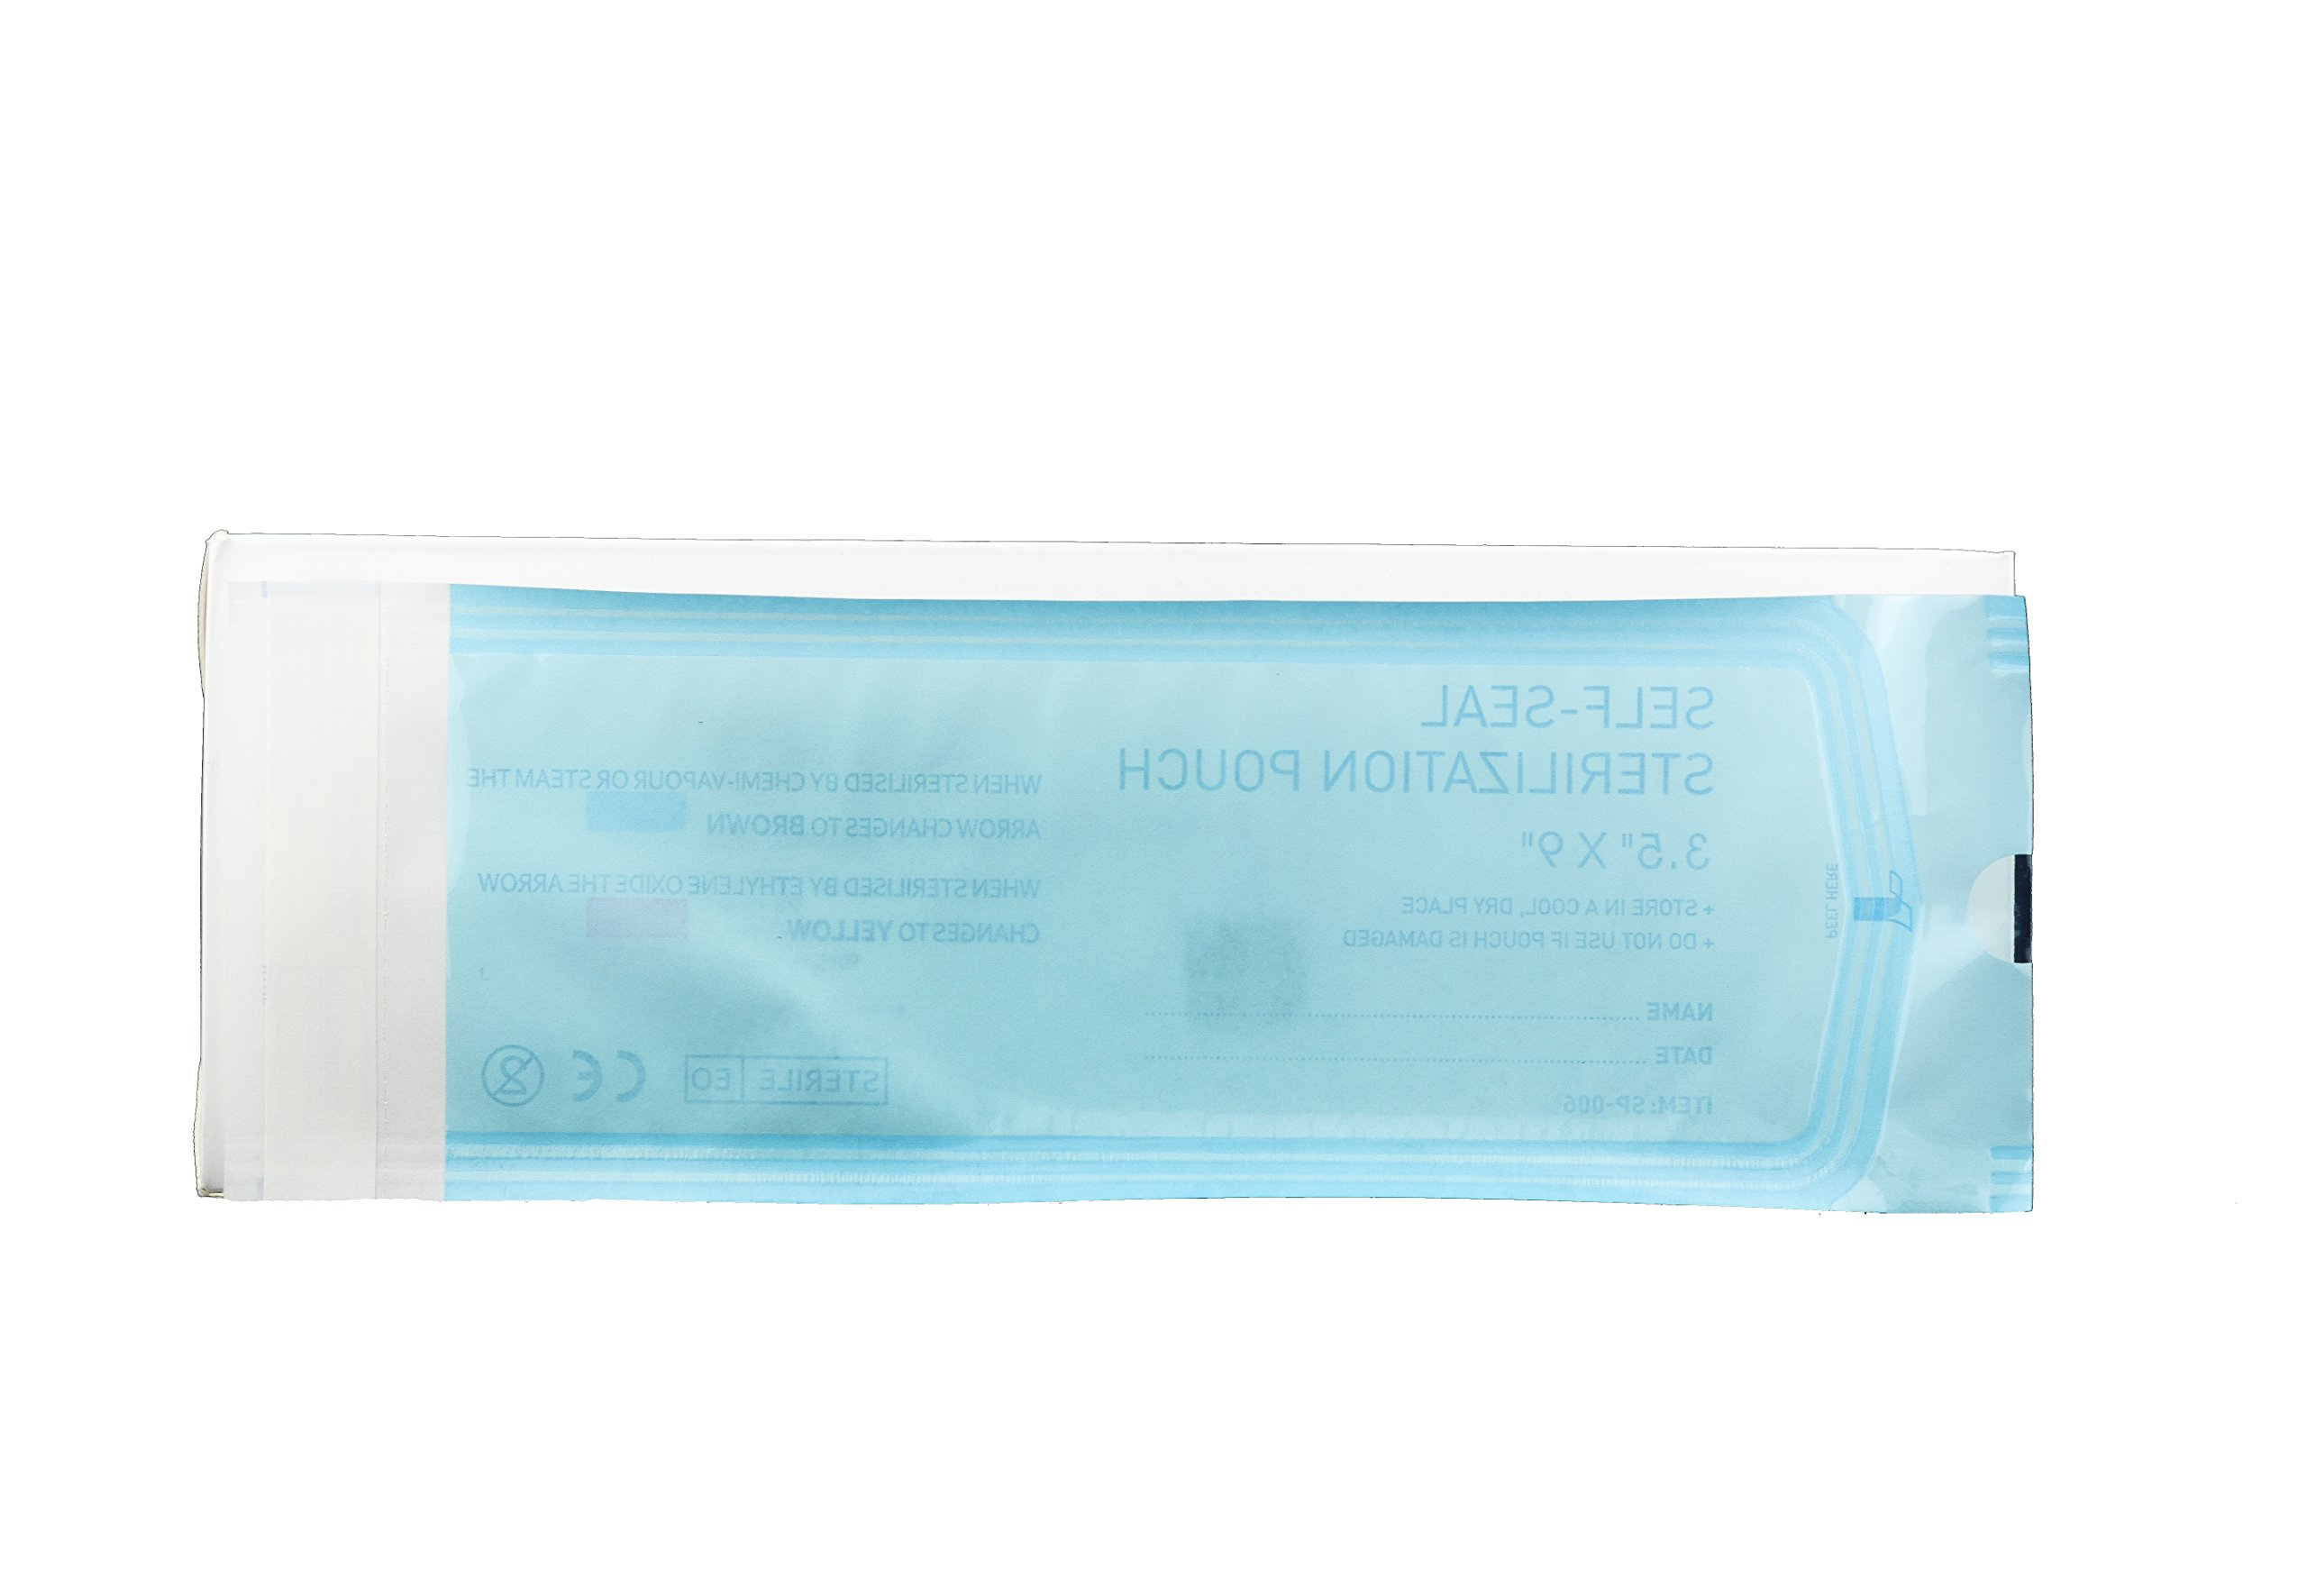 "Sterilization Pouches Self-sealing Autoclave Bags _ Size: 3.5"" x 9"" _ (5 Boxes of 200) 1000 Count (Made of Highest Grade Materials) Manufactured by P&P Medical Surgical LLC"